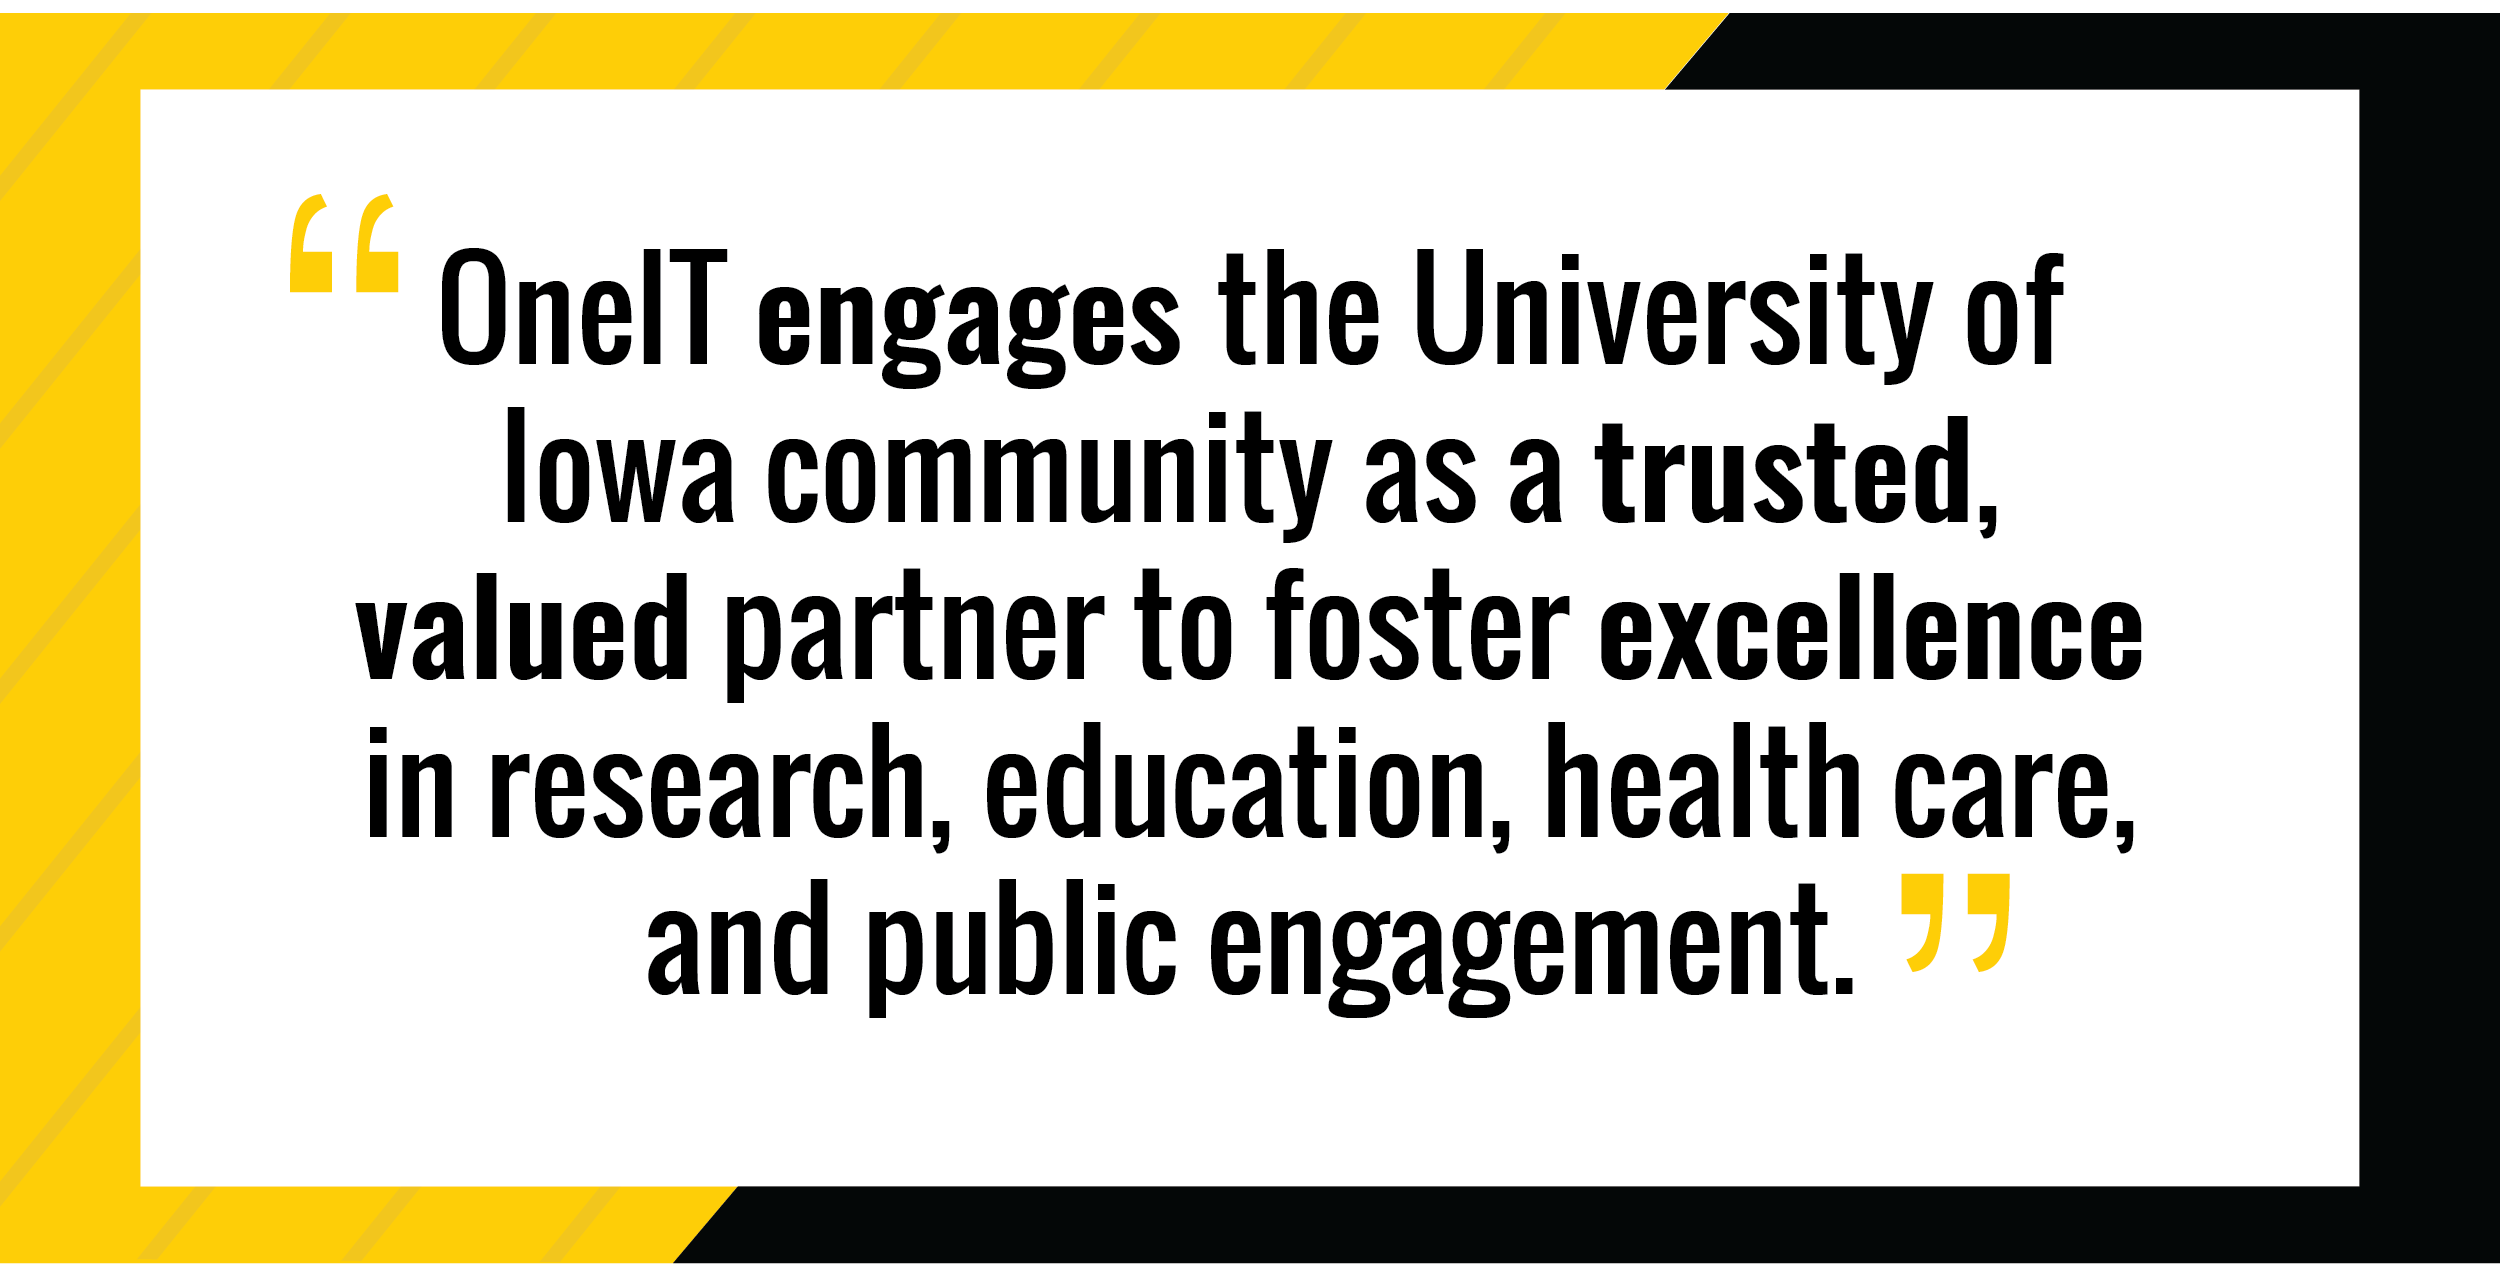 OneIT engages the University of Iowa community as a trusted, valued partner to foster excellence in research, education, health care and public engagement.